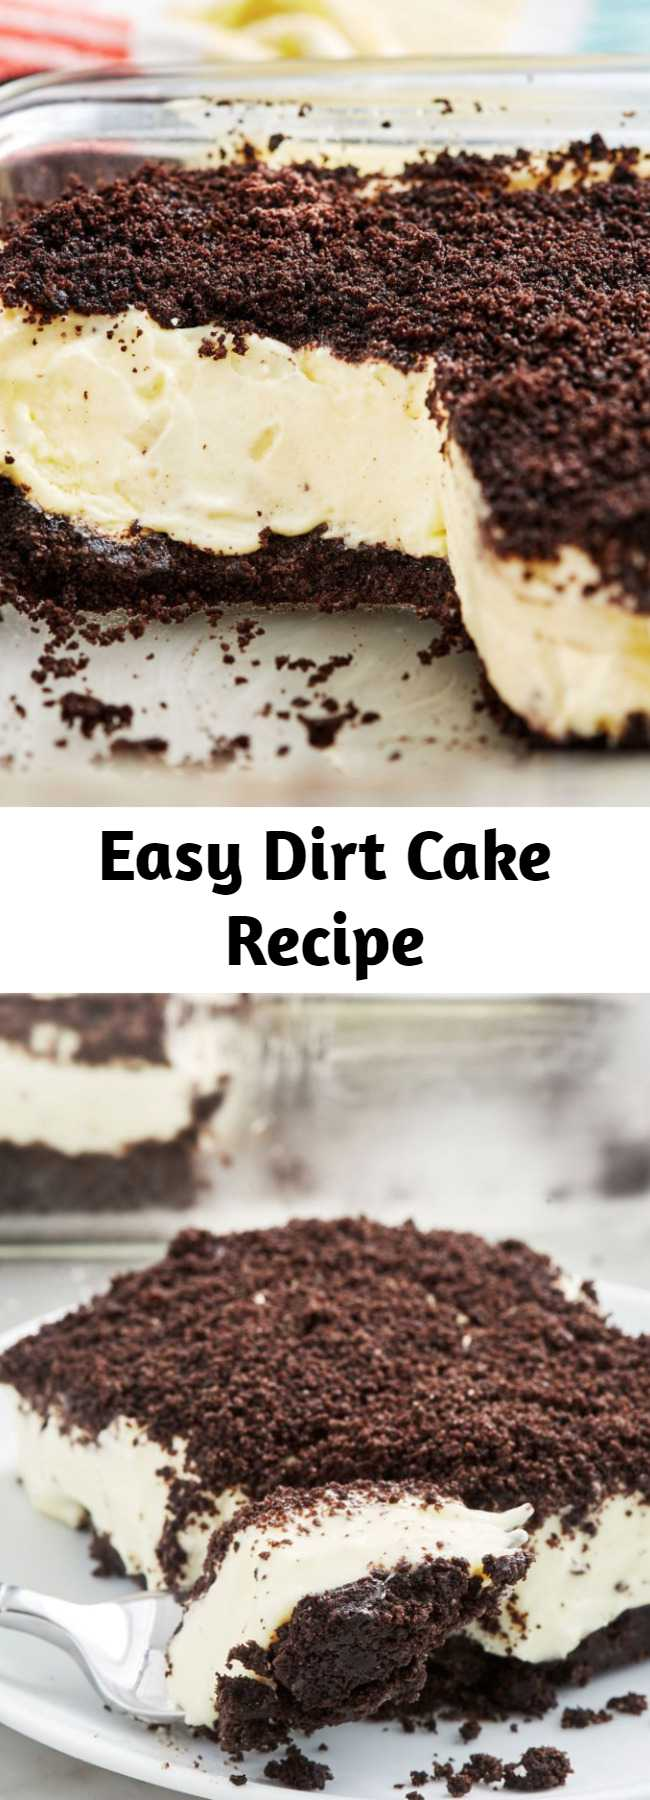 Easy Dirt Cake Recipe - Kids and adults alike will love to dig into this Dirt Cake. Throw some gummy worms on top to make it a little creepier!